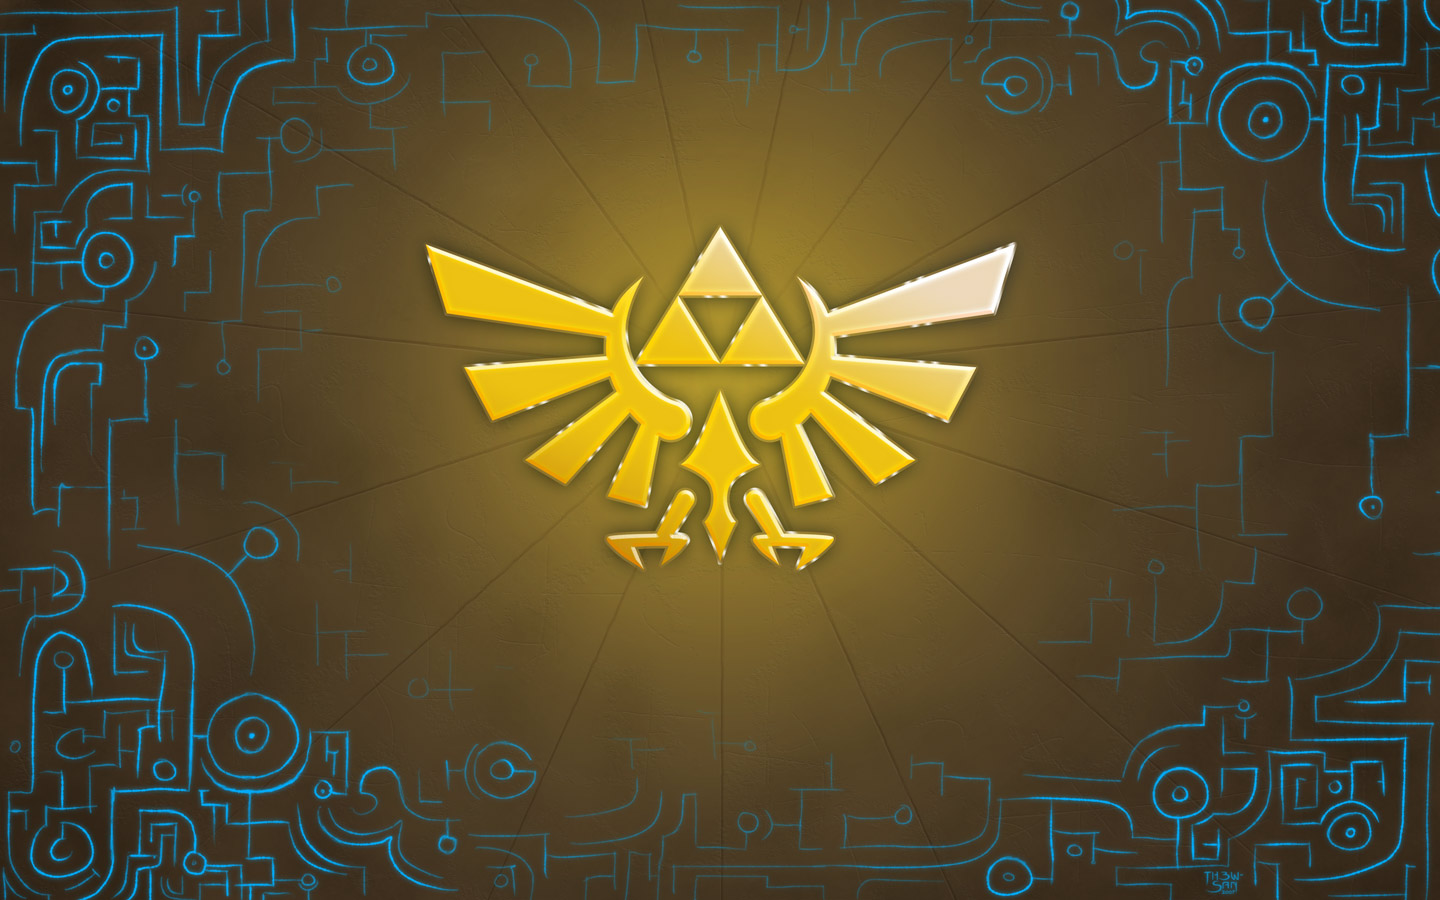 1920x1080 wallpaper zelda wallpaper desktop wallpaper htm filesize 1440x900